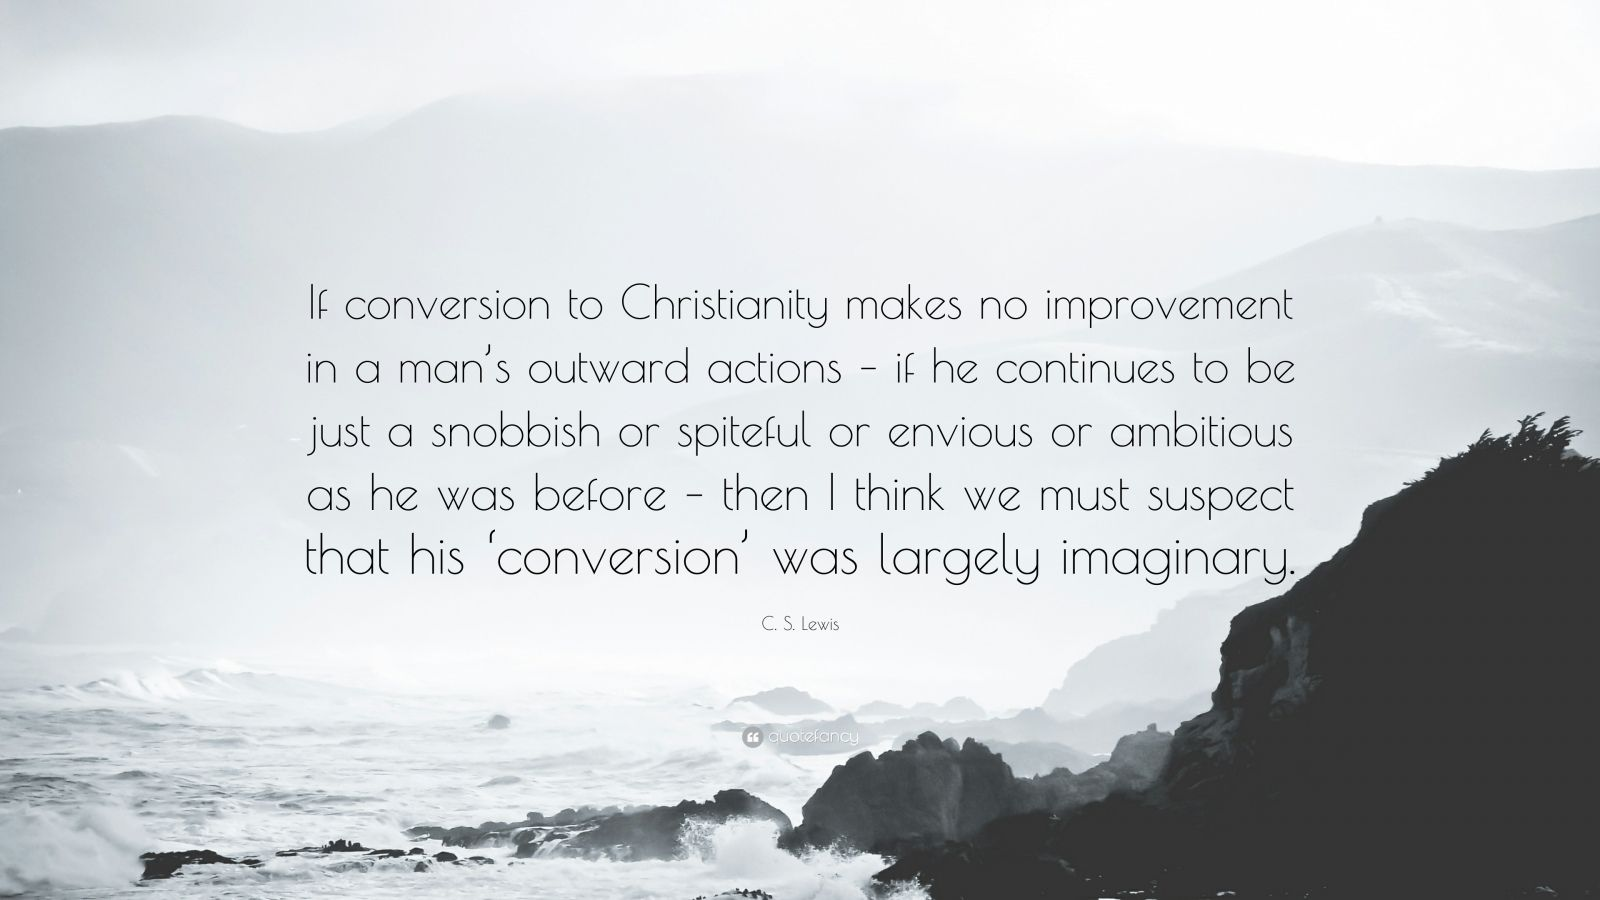 """C. S. Lewis Quote: """"If conversion to Christianity makes no improvement in a man's outward actions – if he continues to be just a snobbish or spiteful or envious or ambitious as he was before – then I think we must suspect that his 'conversion' was largely imaginary."""""""